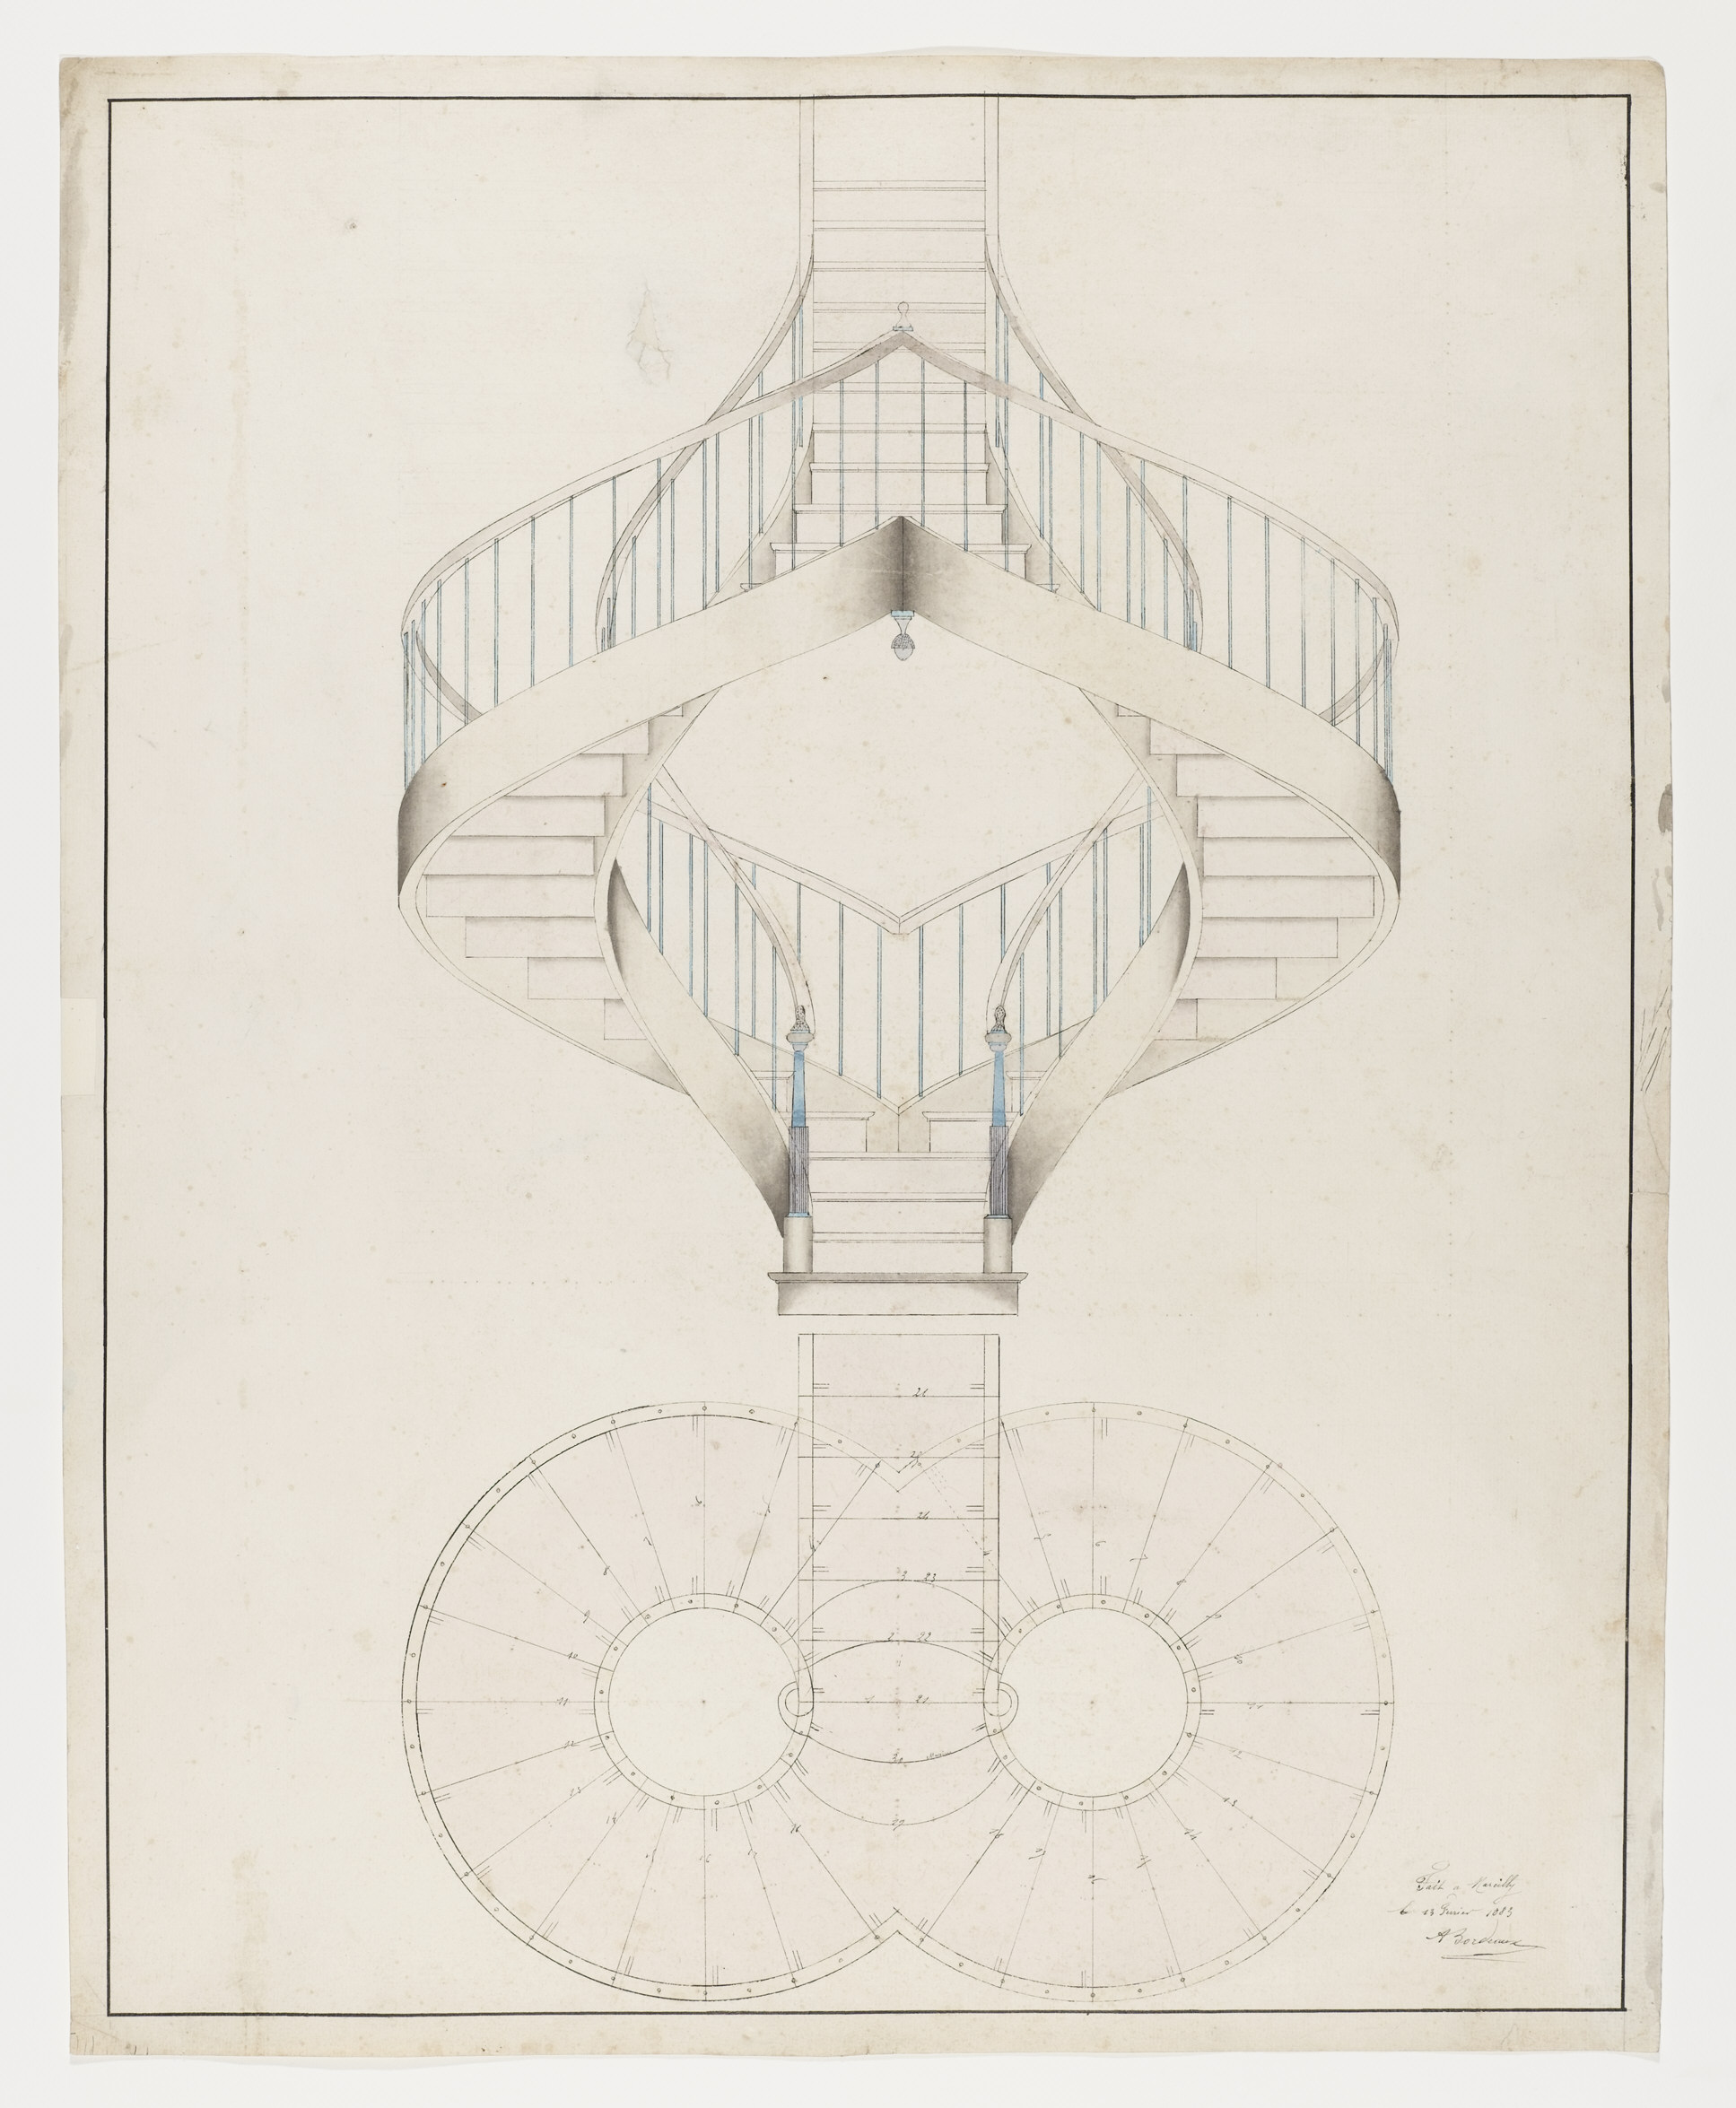 Picture of: Drawing Perspective Elevation And Plan View Of A Double Spiral Staircase February 13 1883 Objects Collection Of Cooper Hewitt Smithsonian Design Museum